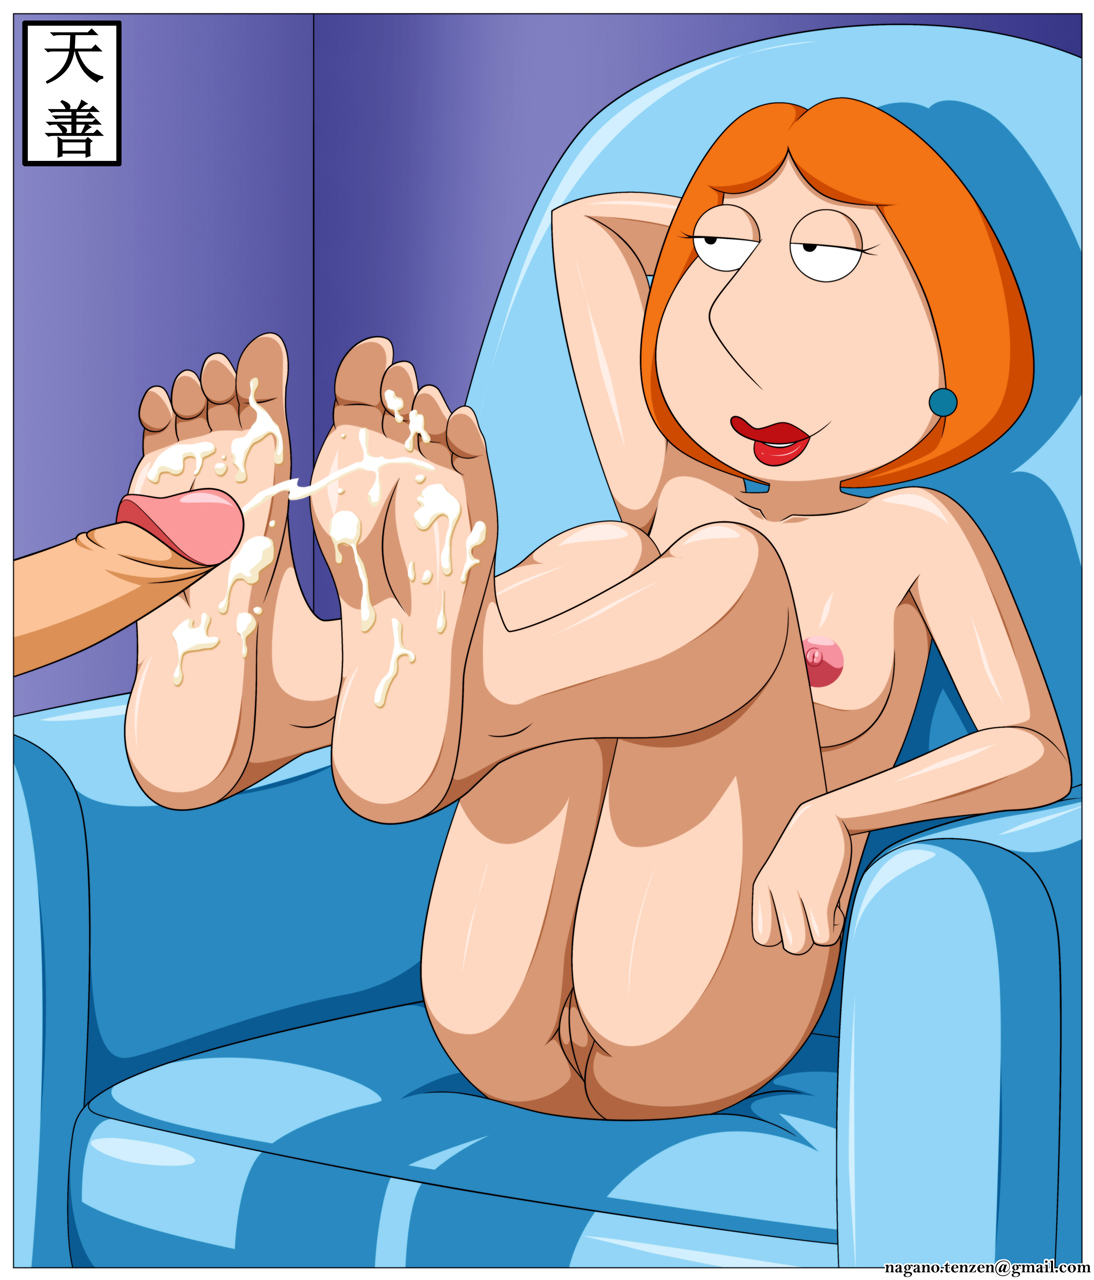 from Luke nude family guy pictures